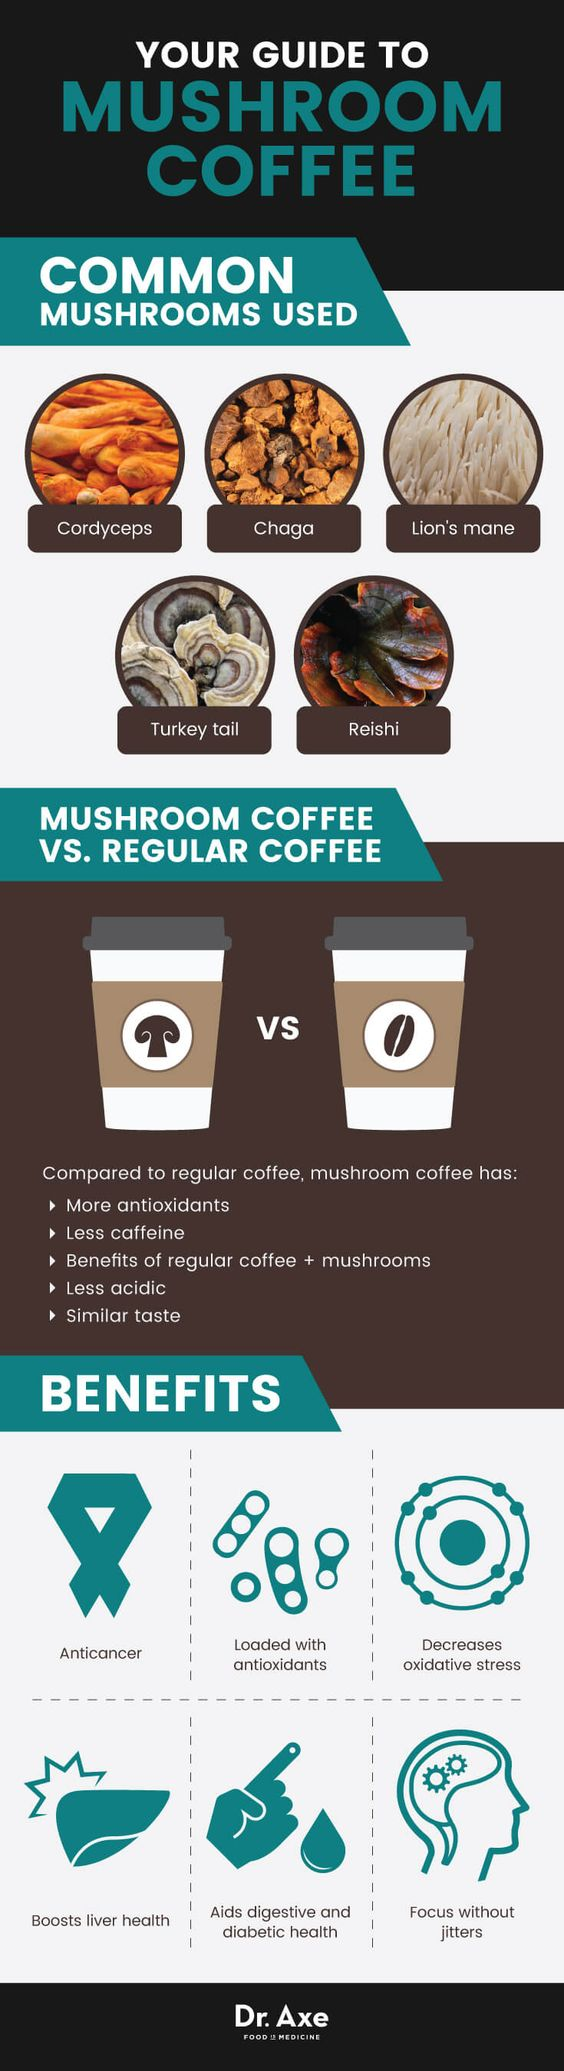 Guide to mushroom coffee